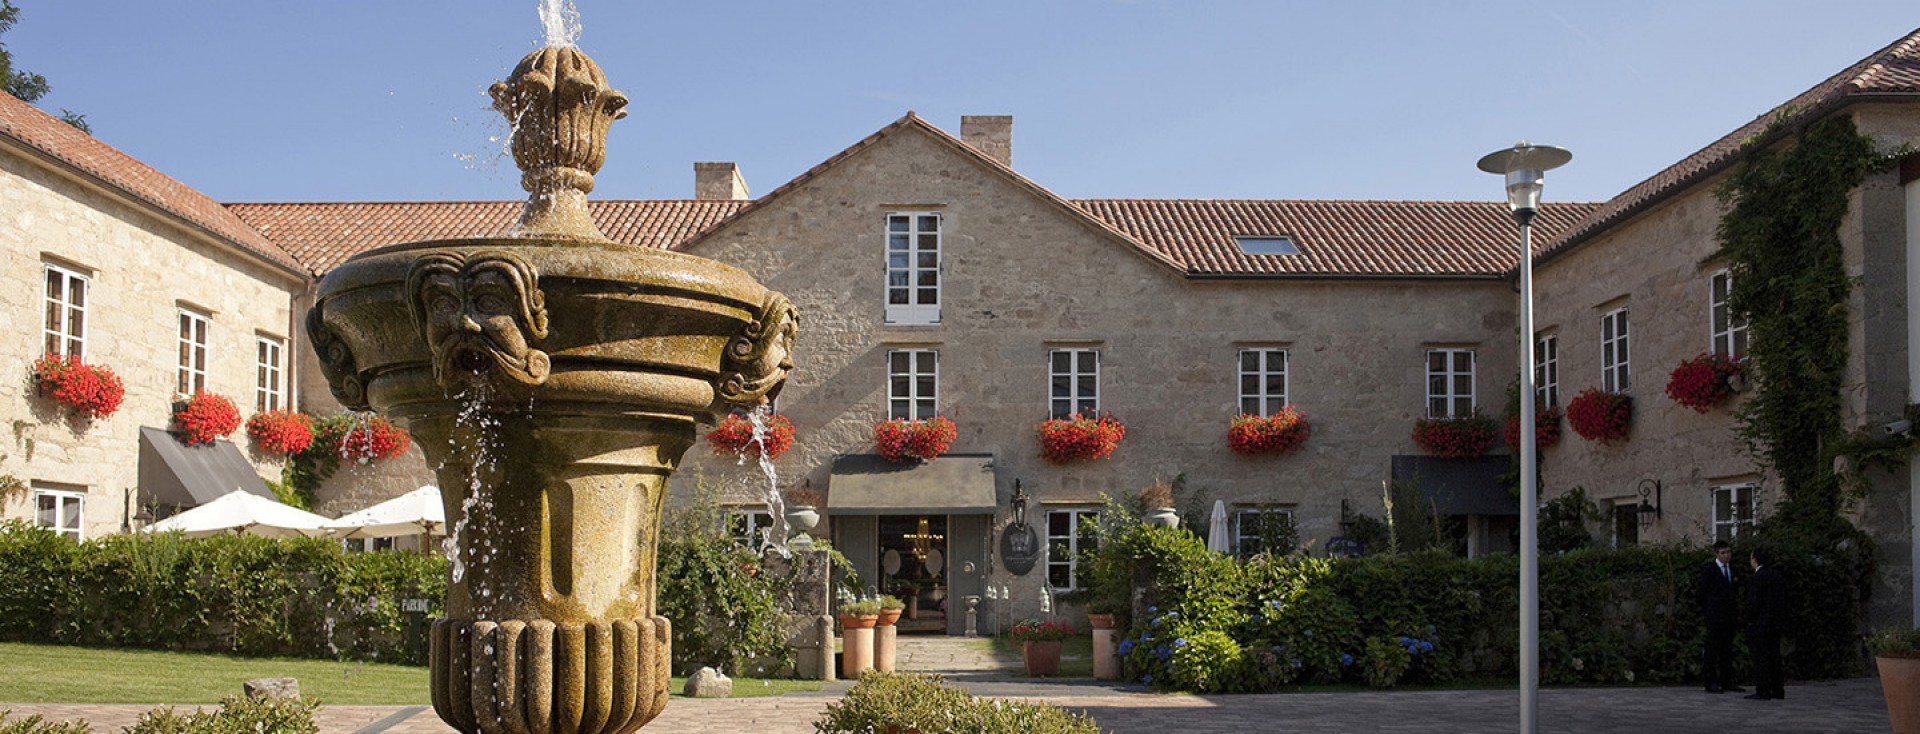 Luxury spa getaways & spa breaks with Relais & Châteaux